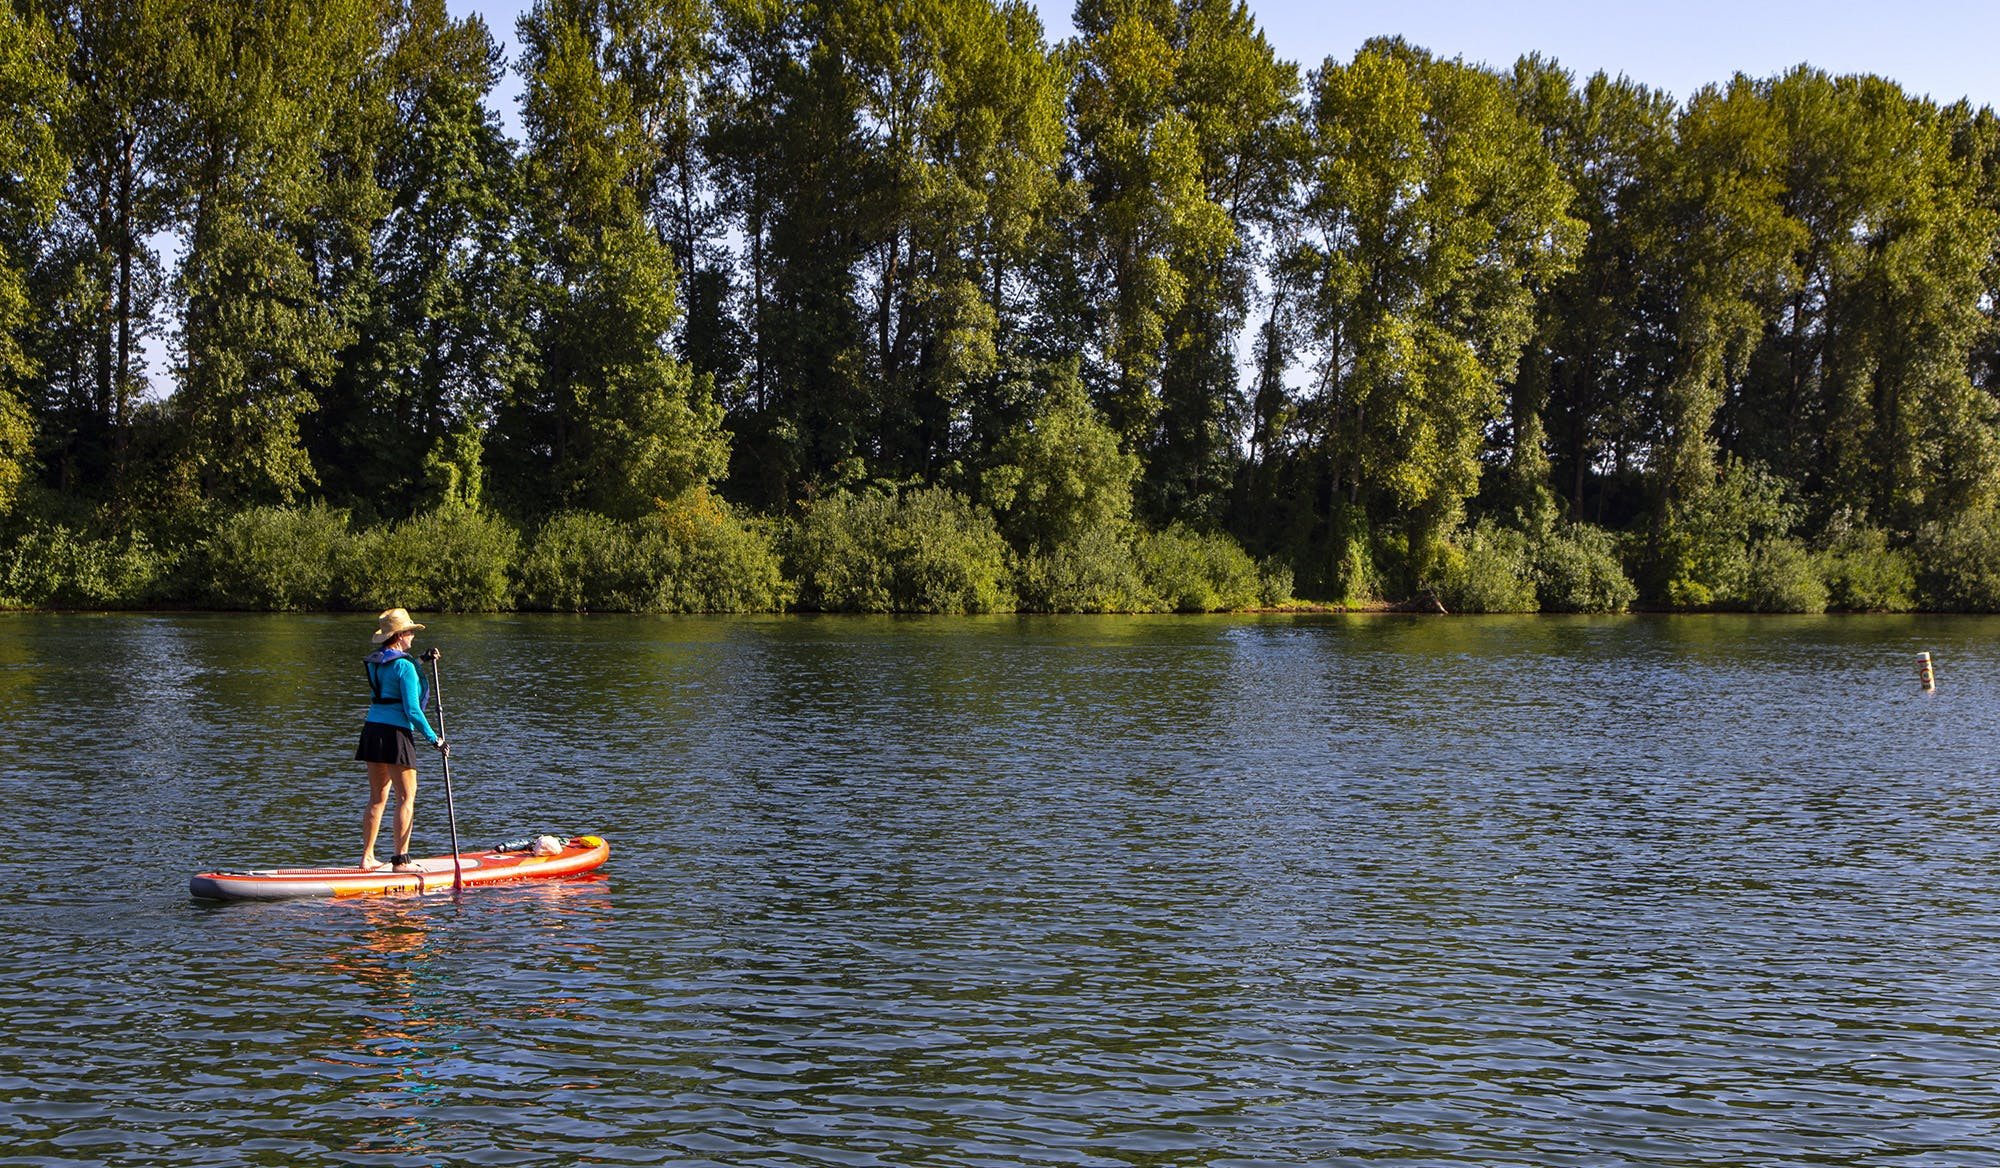 Desireé Neel on a paddleboard on the Willamette River at Rogers Landing